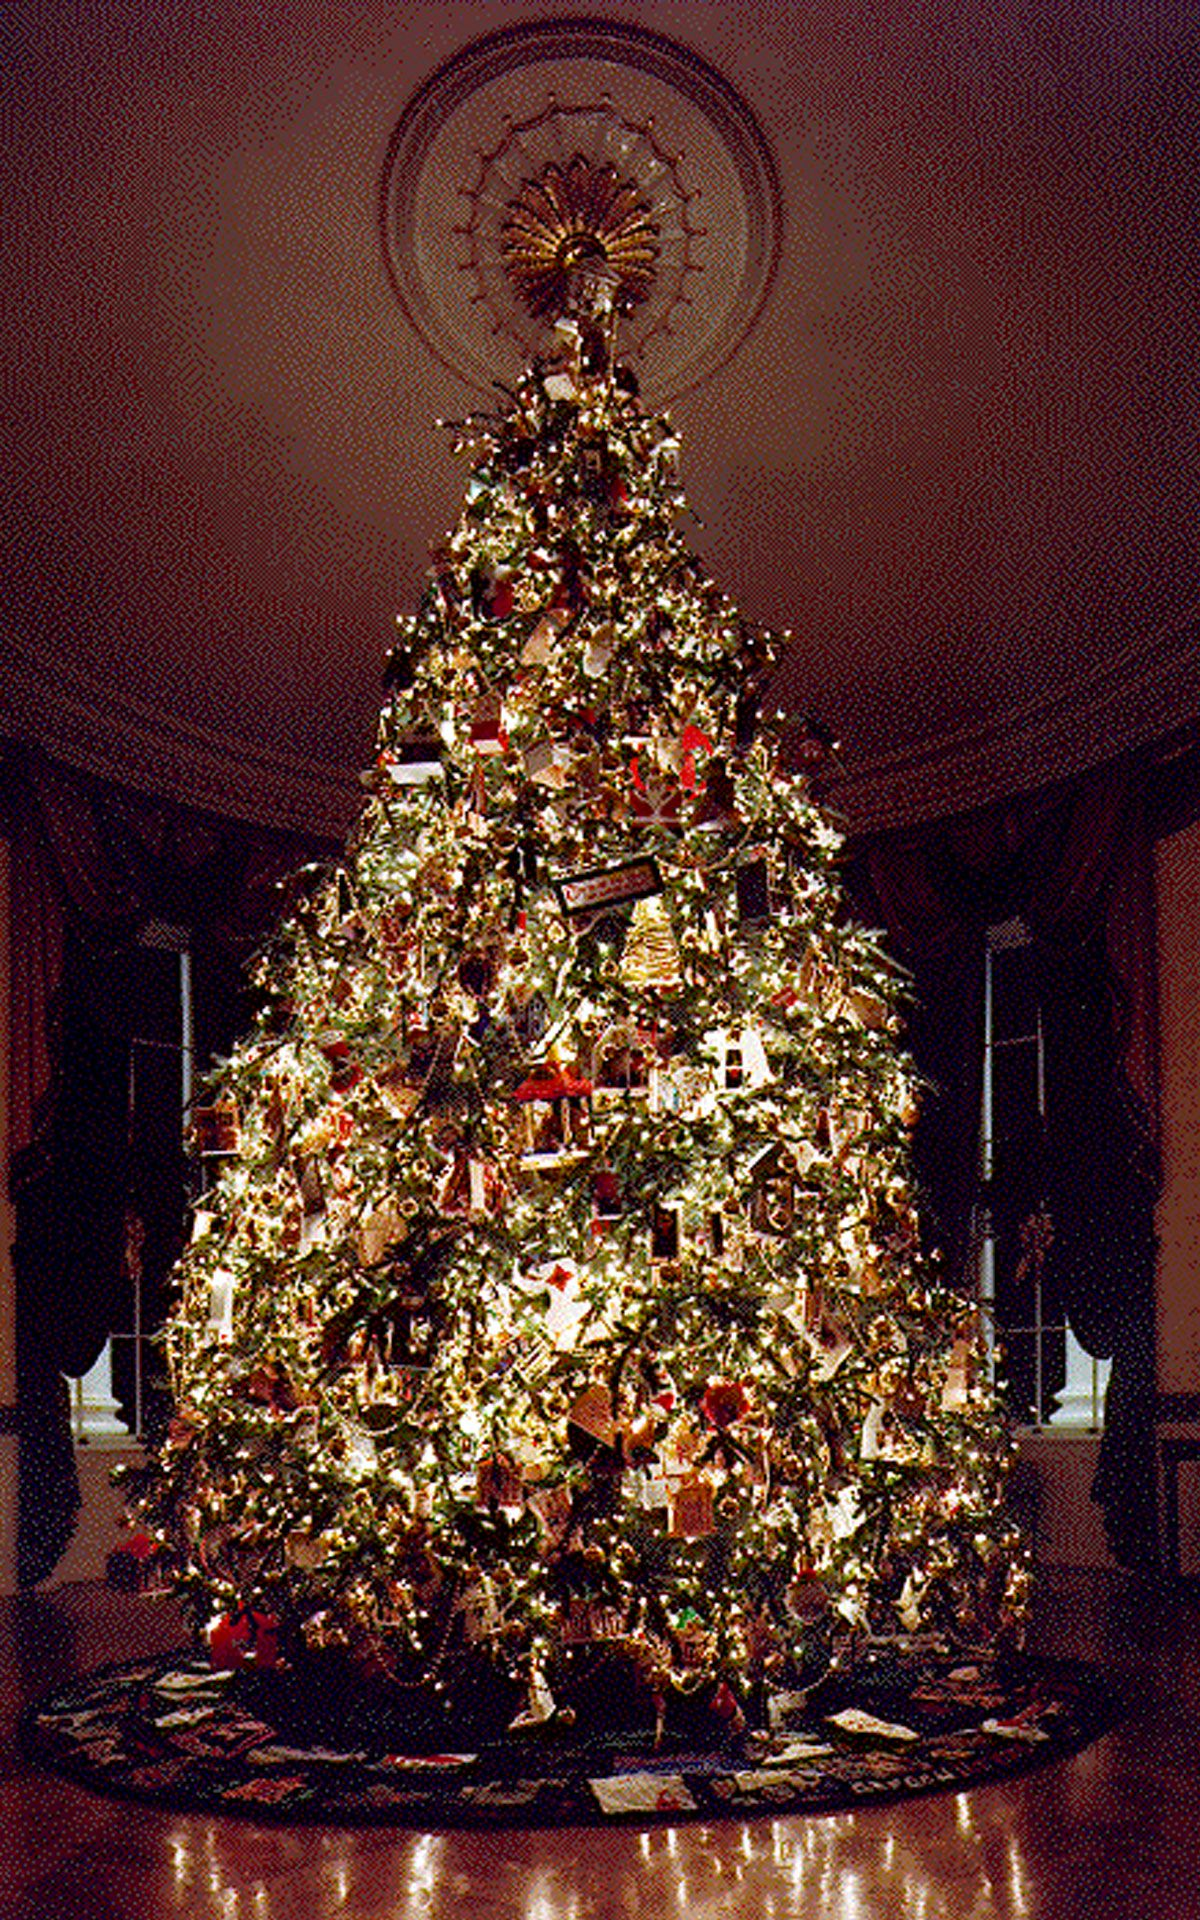 christmas tree decorating ideas 2013 luxury christmas tree decorations ideas real house design background - Christmas Trees Decorated